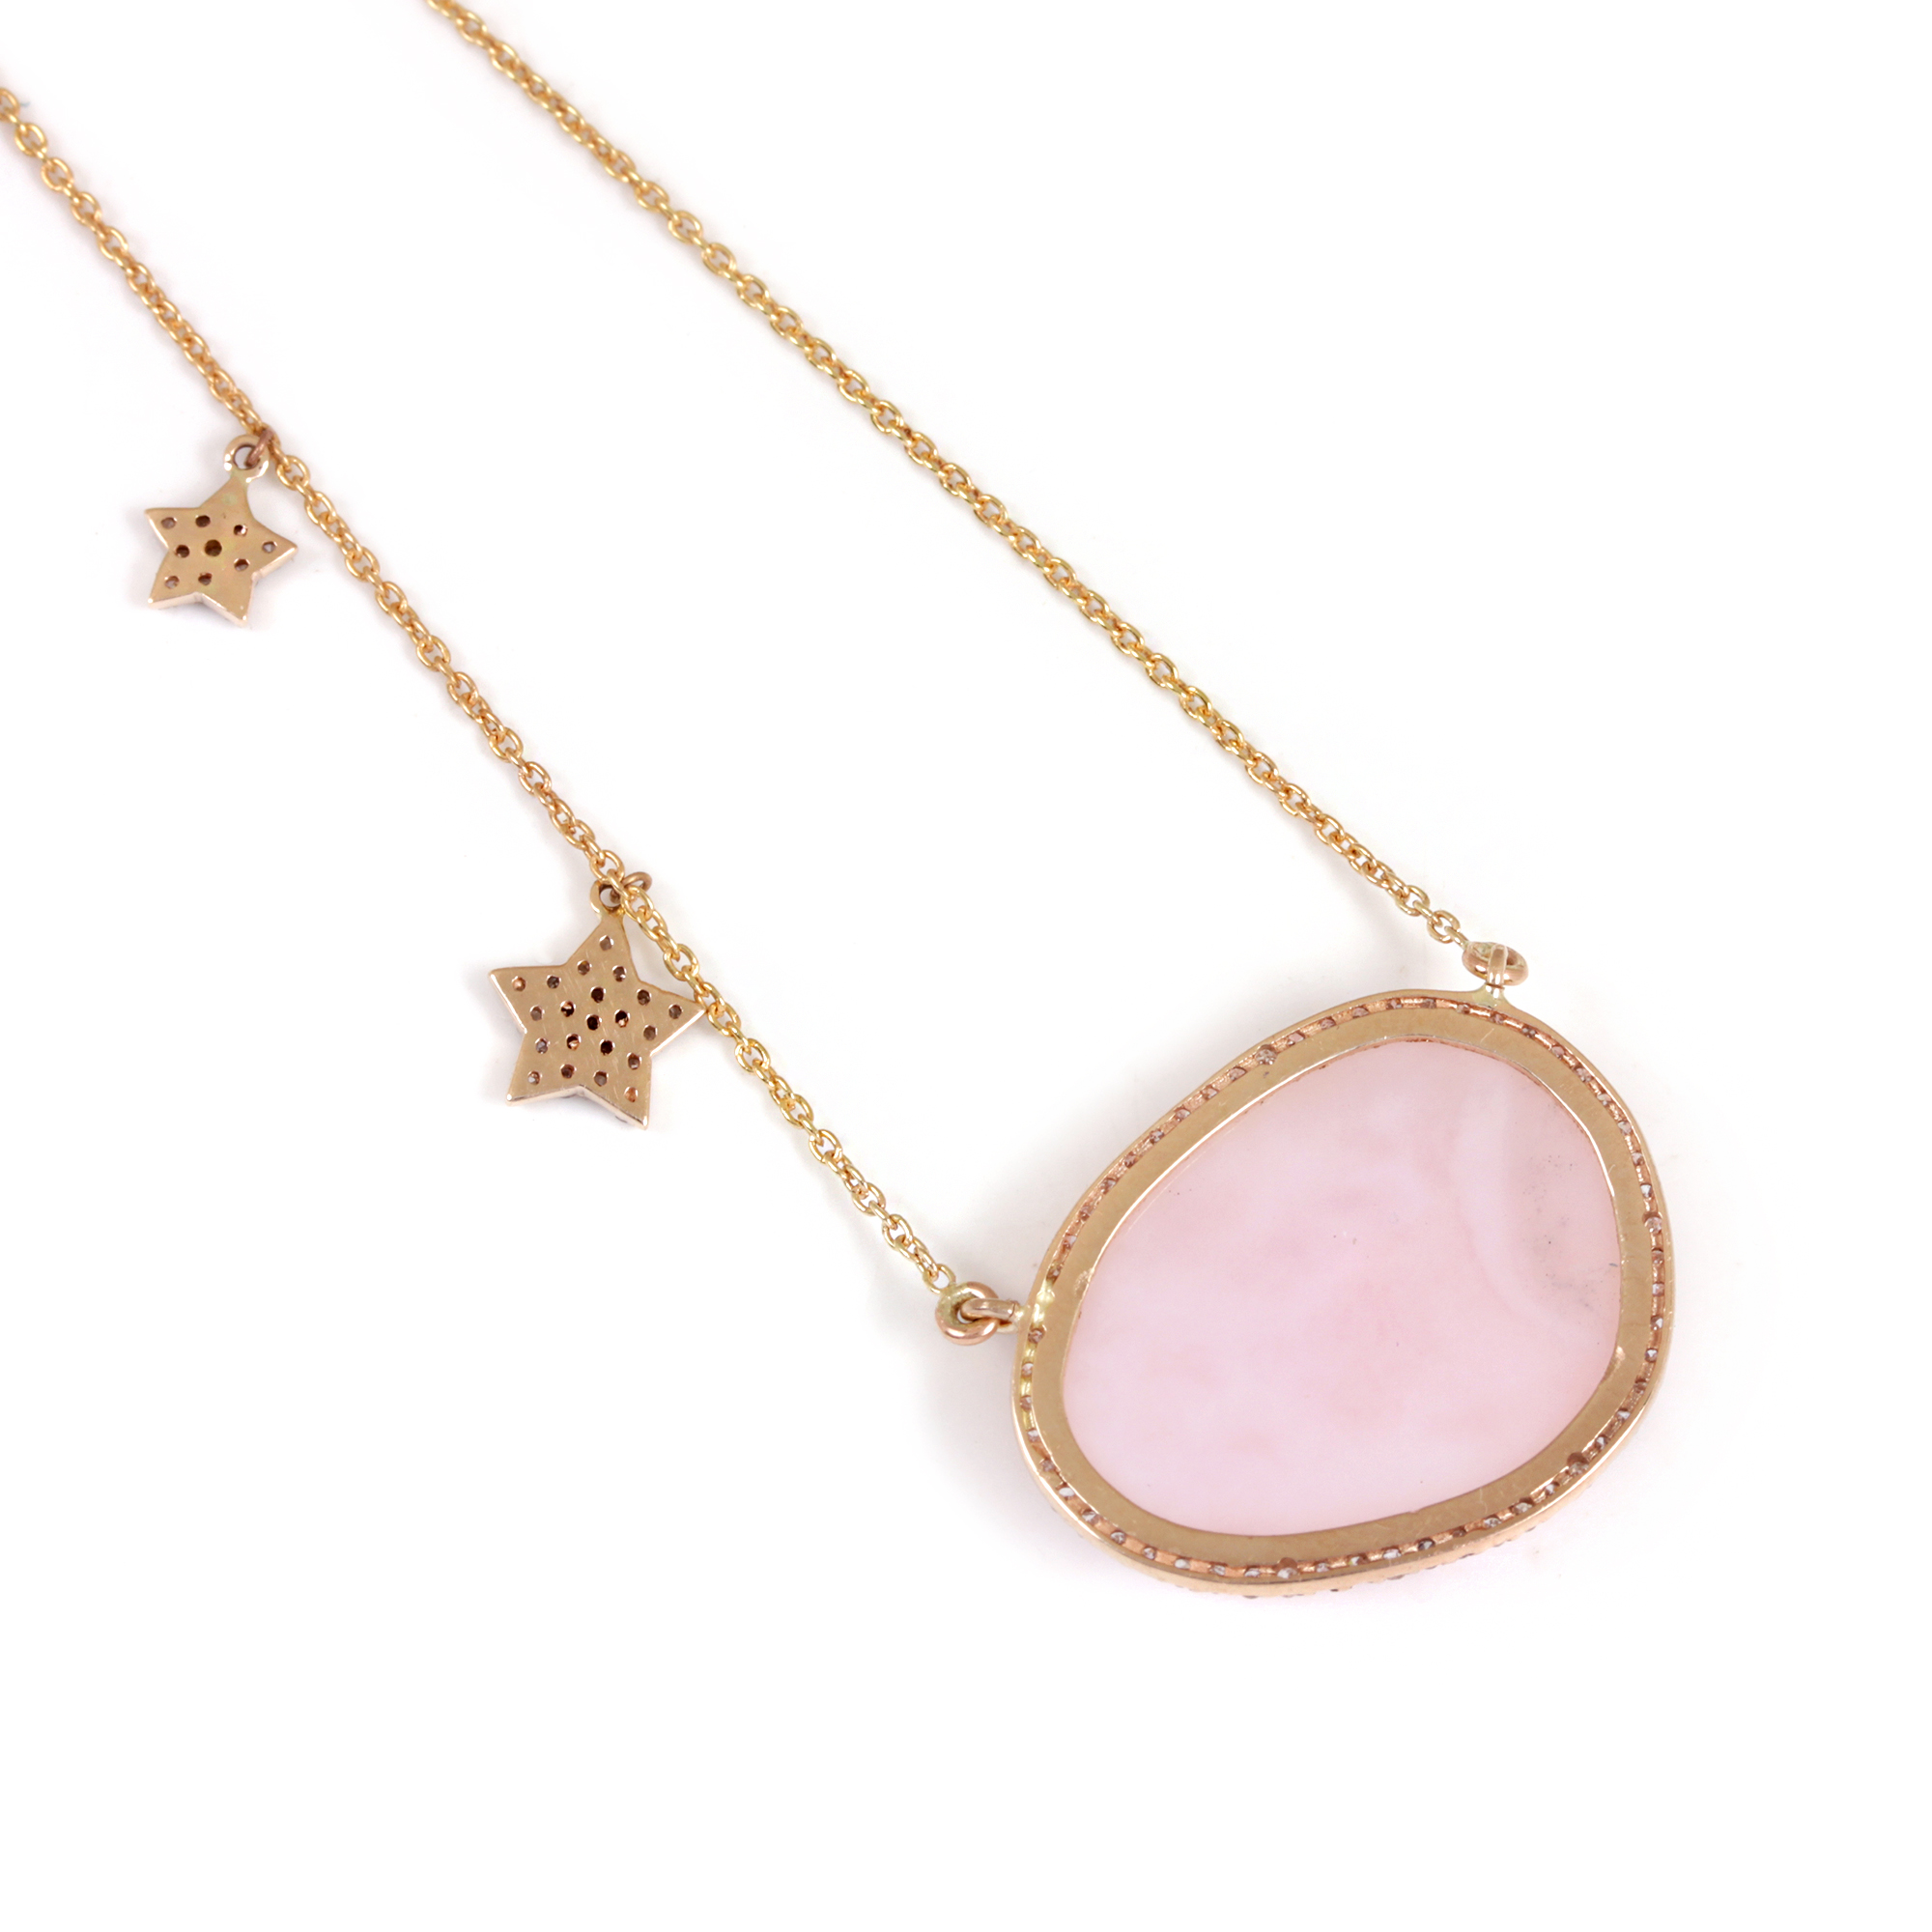 Pink Opal Pave Diamond Pendant Necklace 14K Solid Gold Chain Jewelry